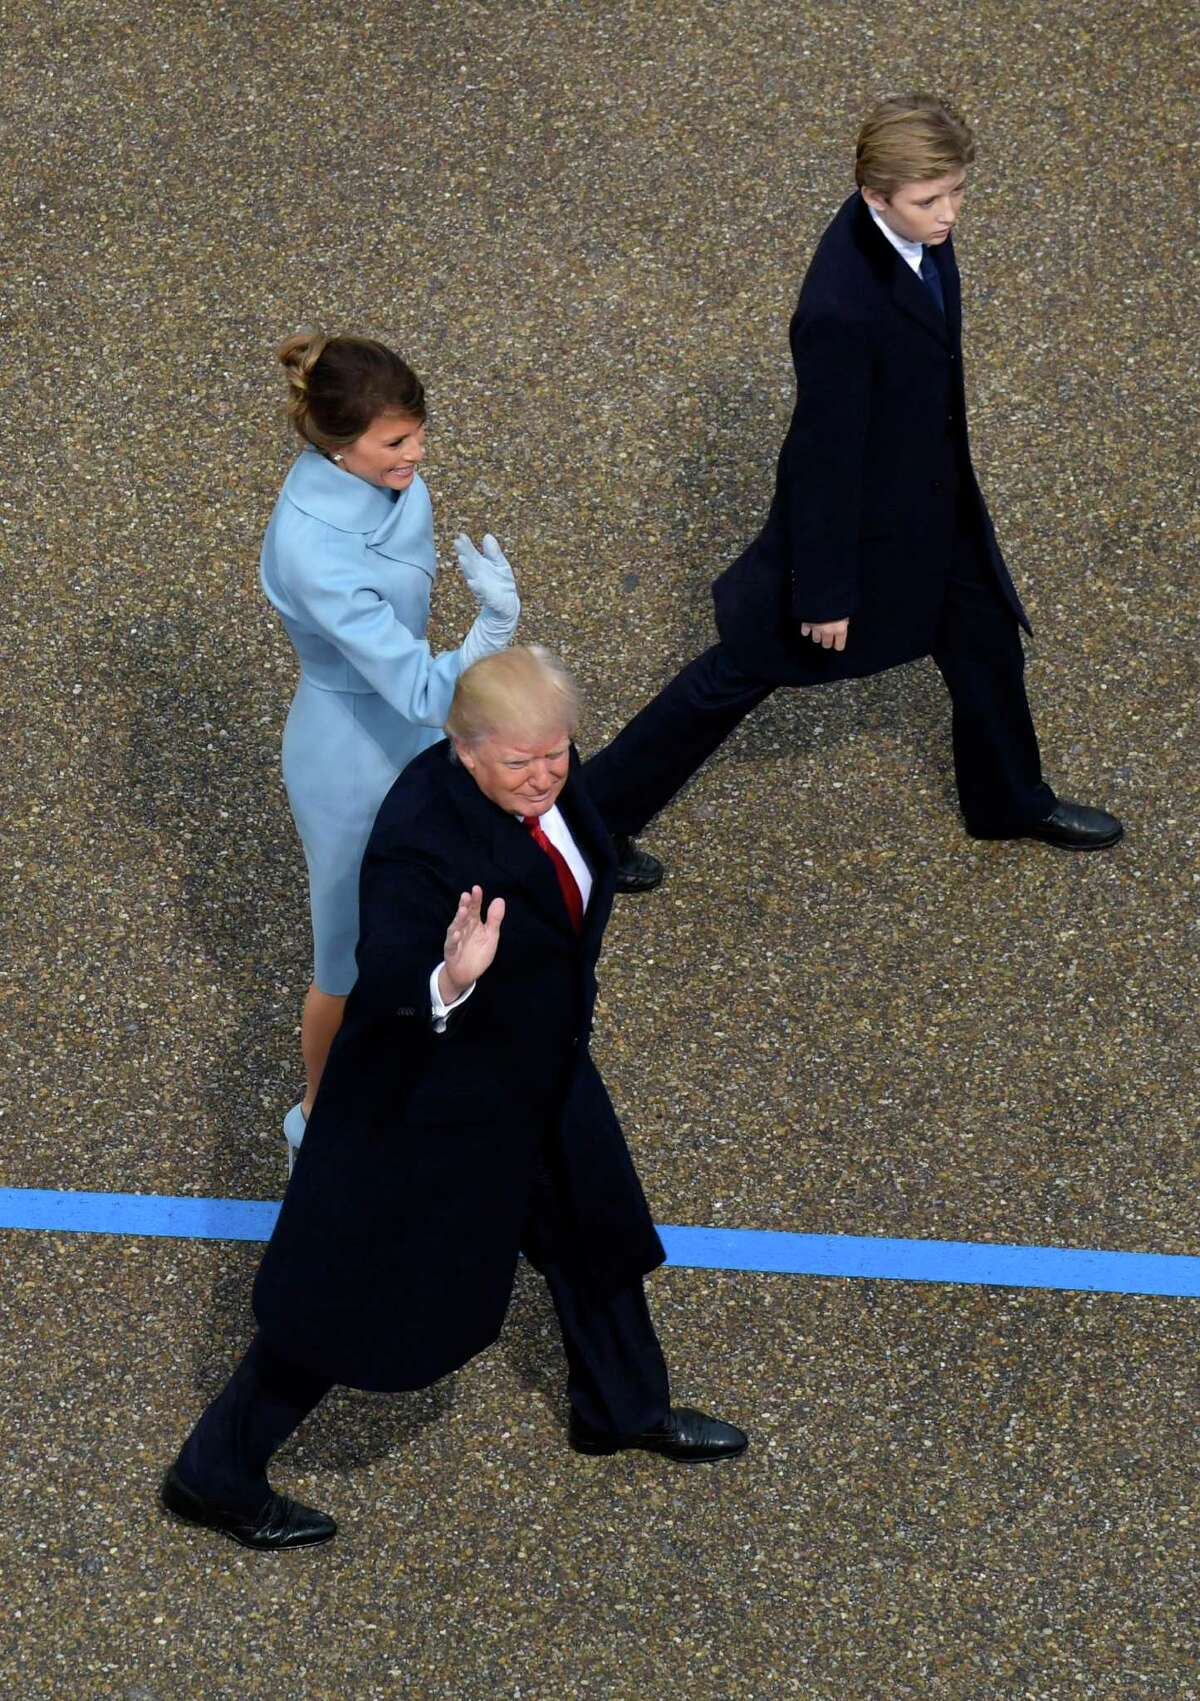 President Donald Trump waves as he walks with first lady Melania Trump and their son Barron during the 58th Presidential Inauguration parade for President Donald Trump in Washington. Friday, Jan. 20, 2017. (AP Photo/Susan Walsh)